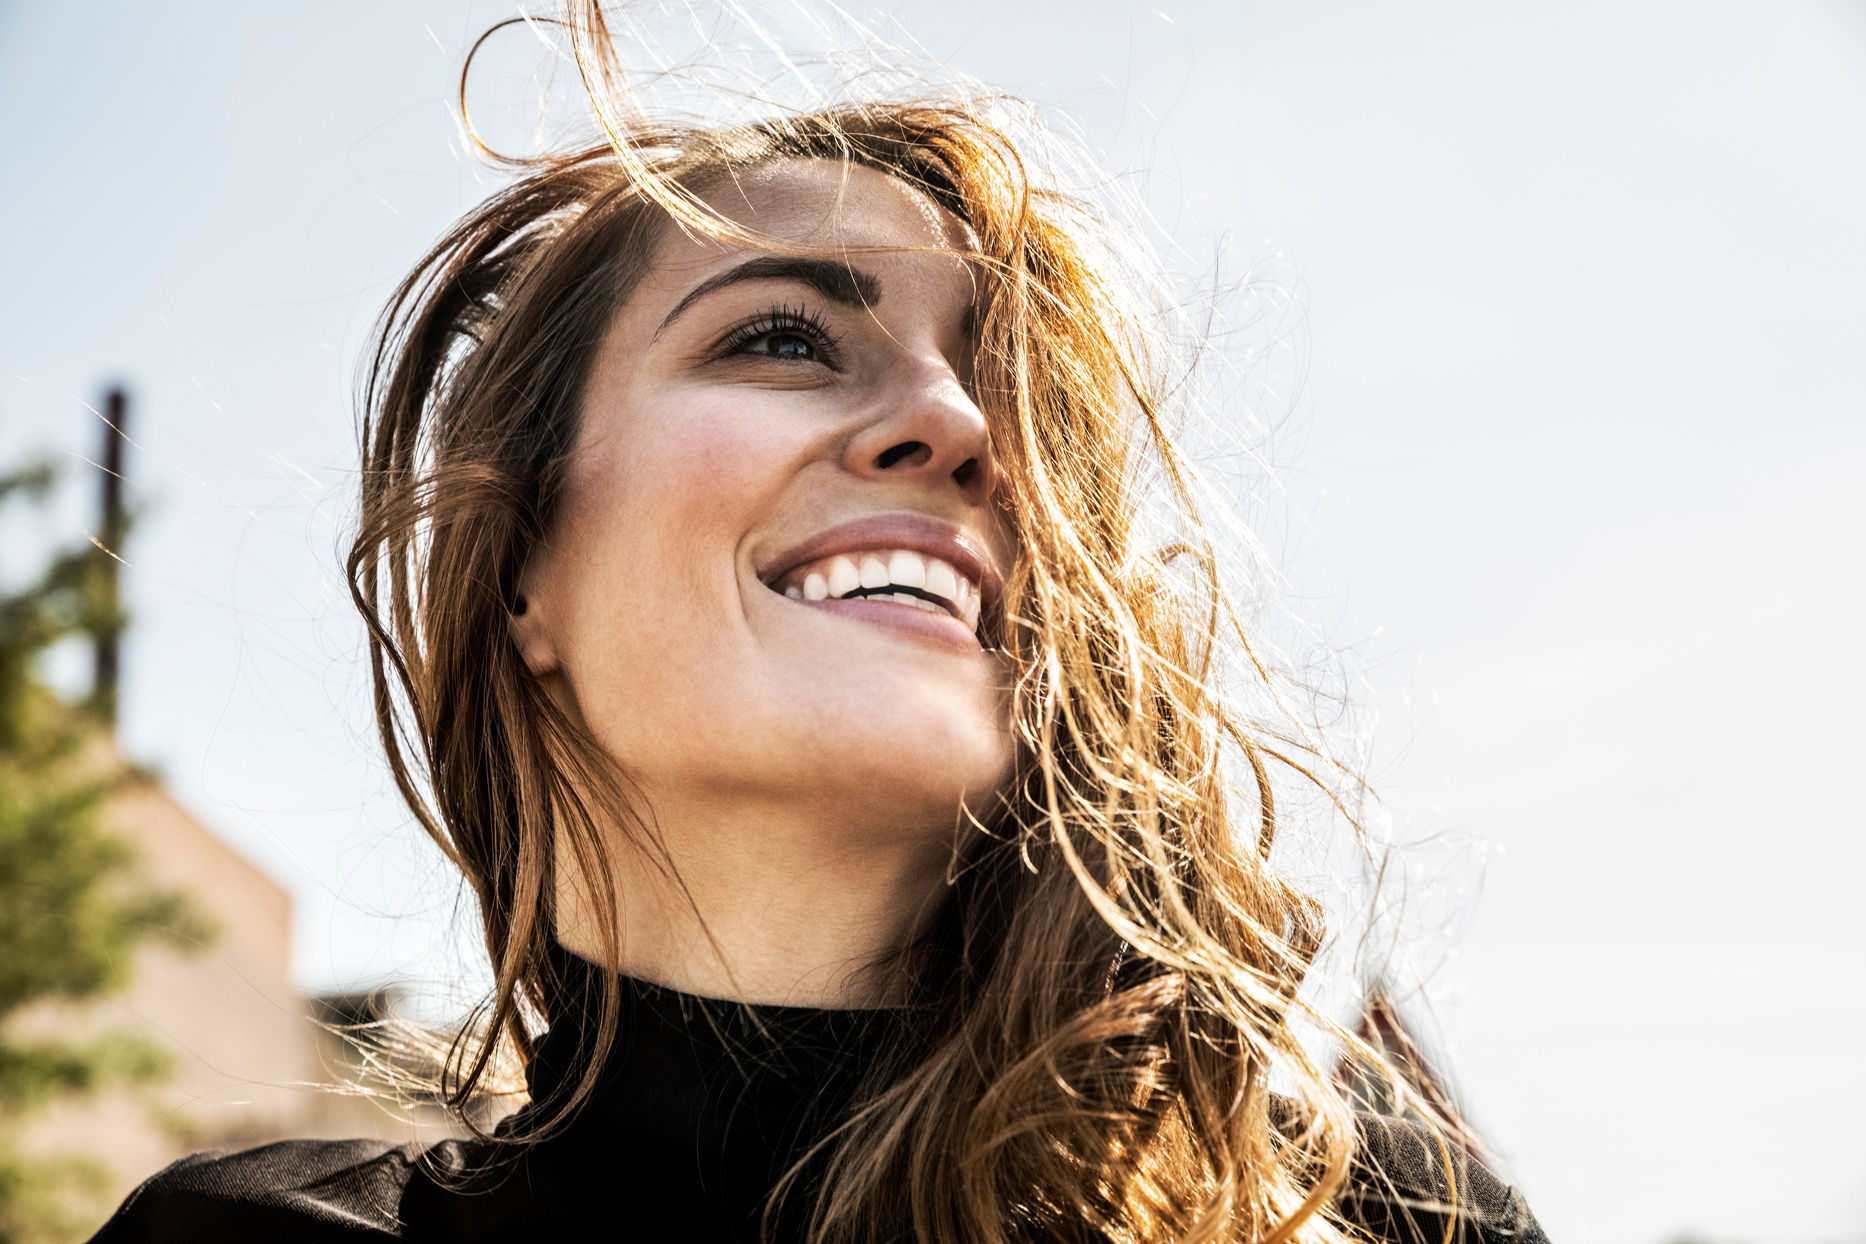 woman smiling while hair blows in wind